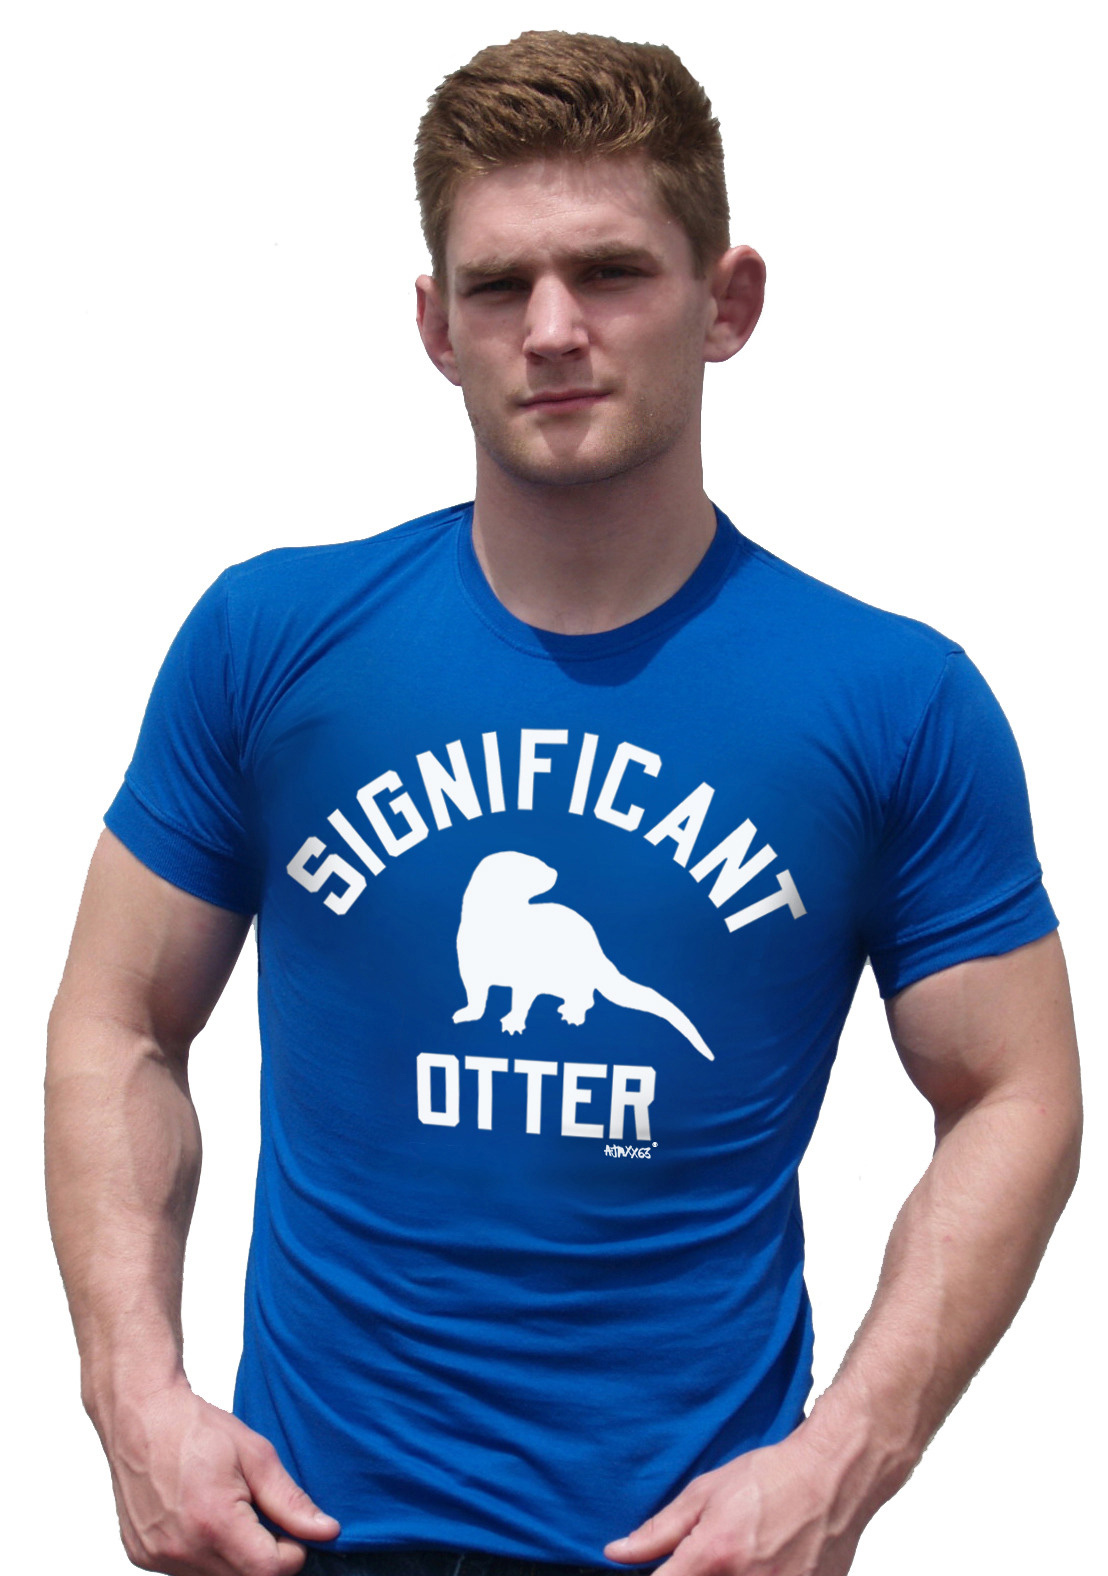 Ajaxx63 AS101 Significant Otter Shirt